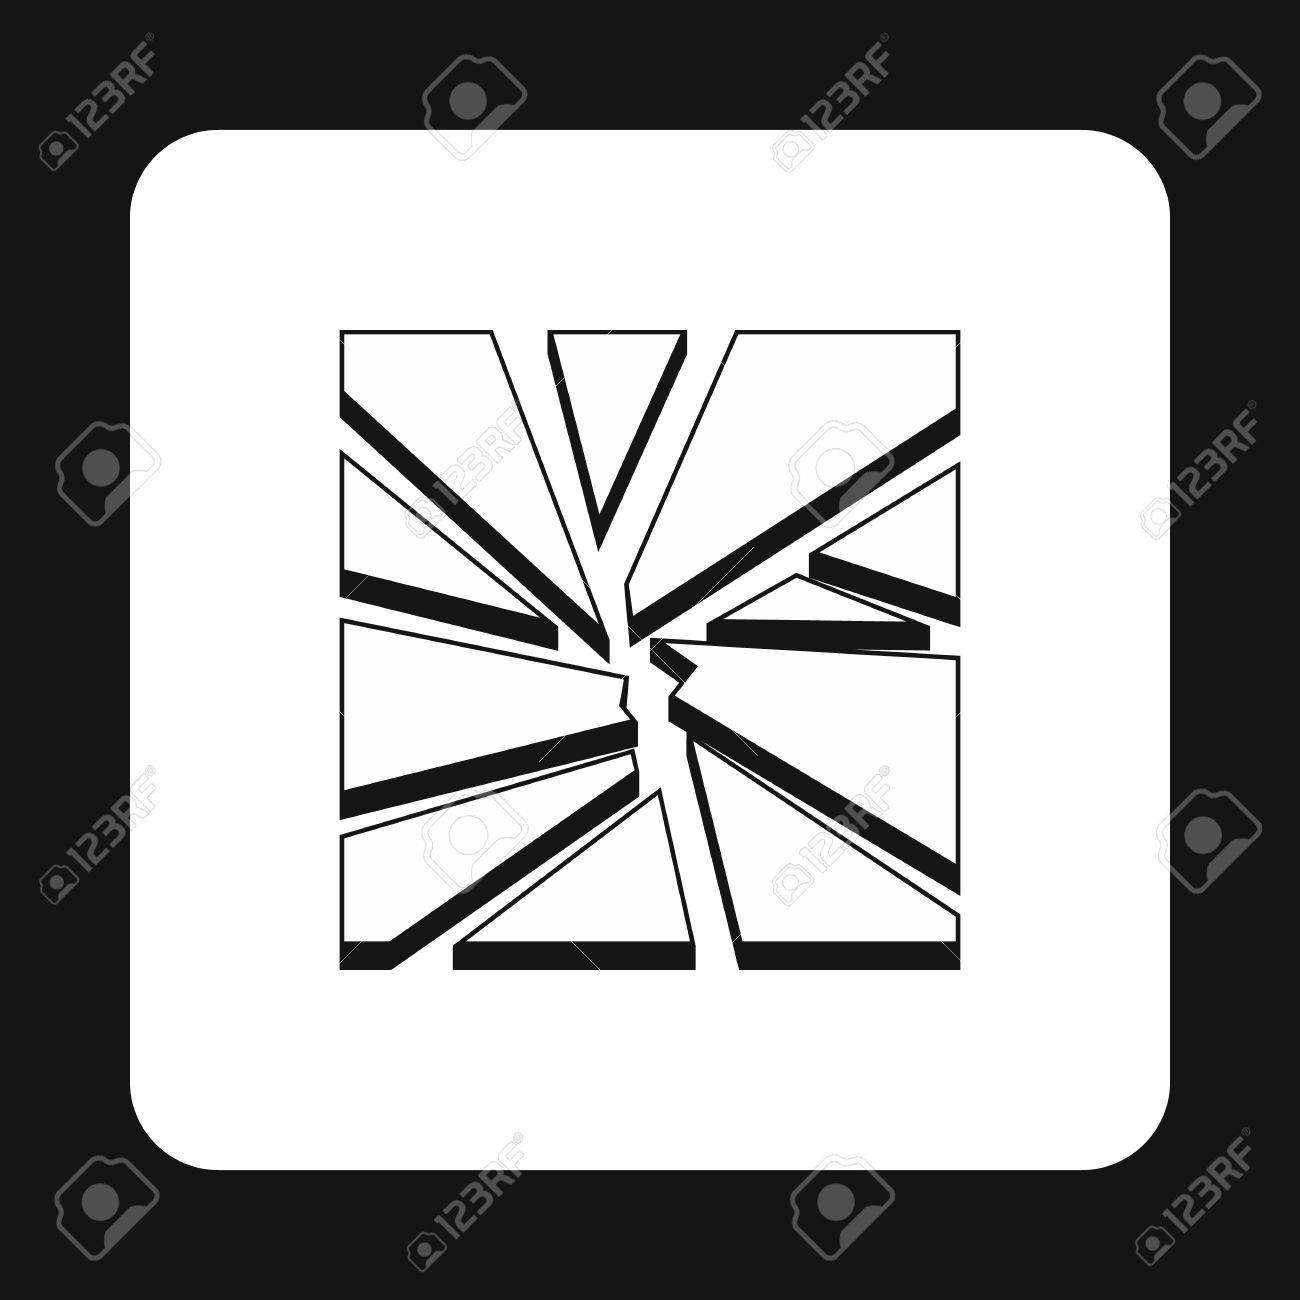 broken glass icon in simple style isolated on white background